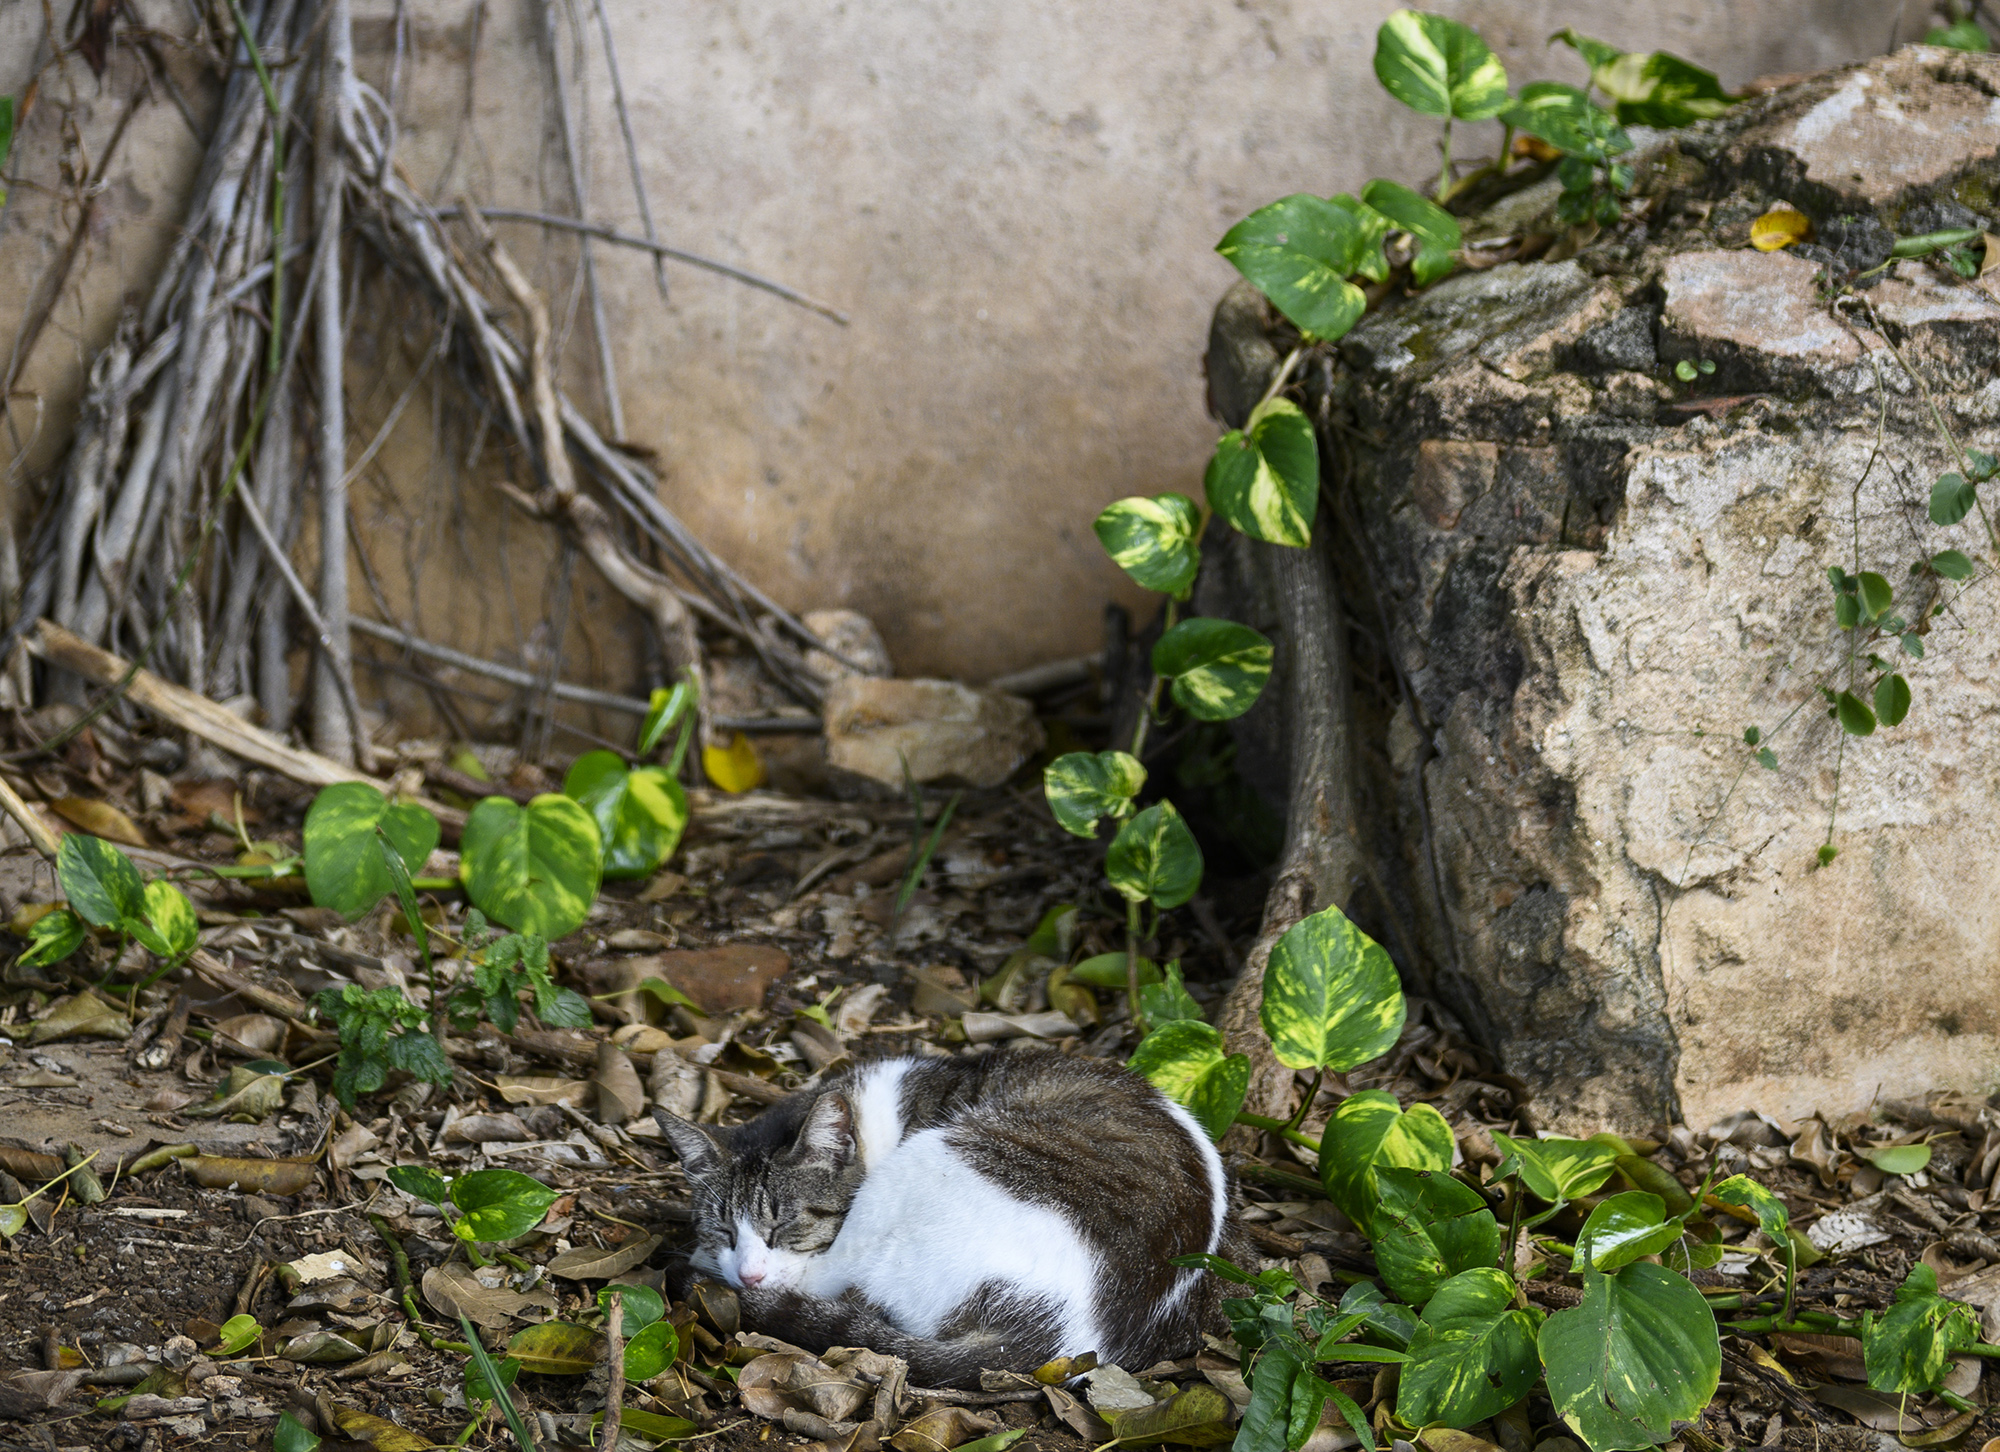 A cat sleeps in a sheltered nook in Old San Juan. Photo by Caitlin Lee